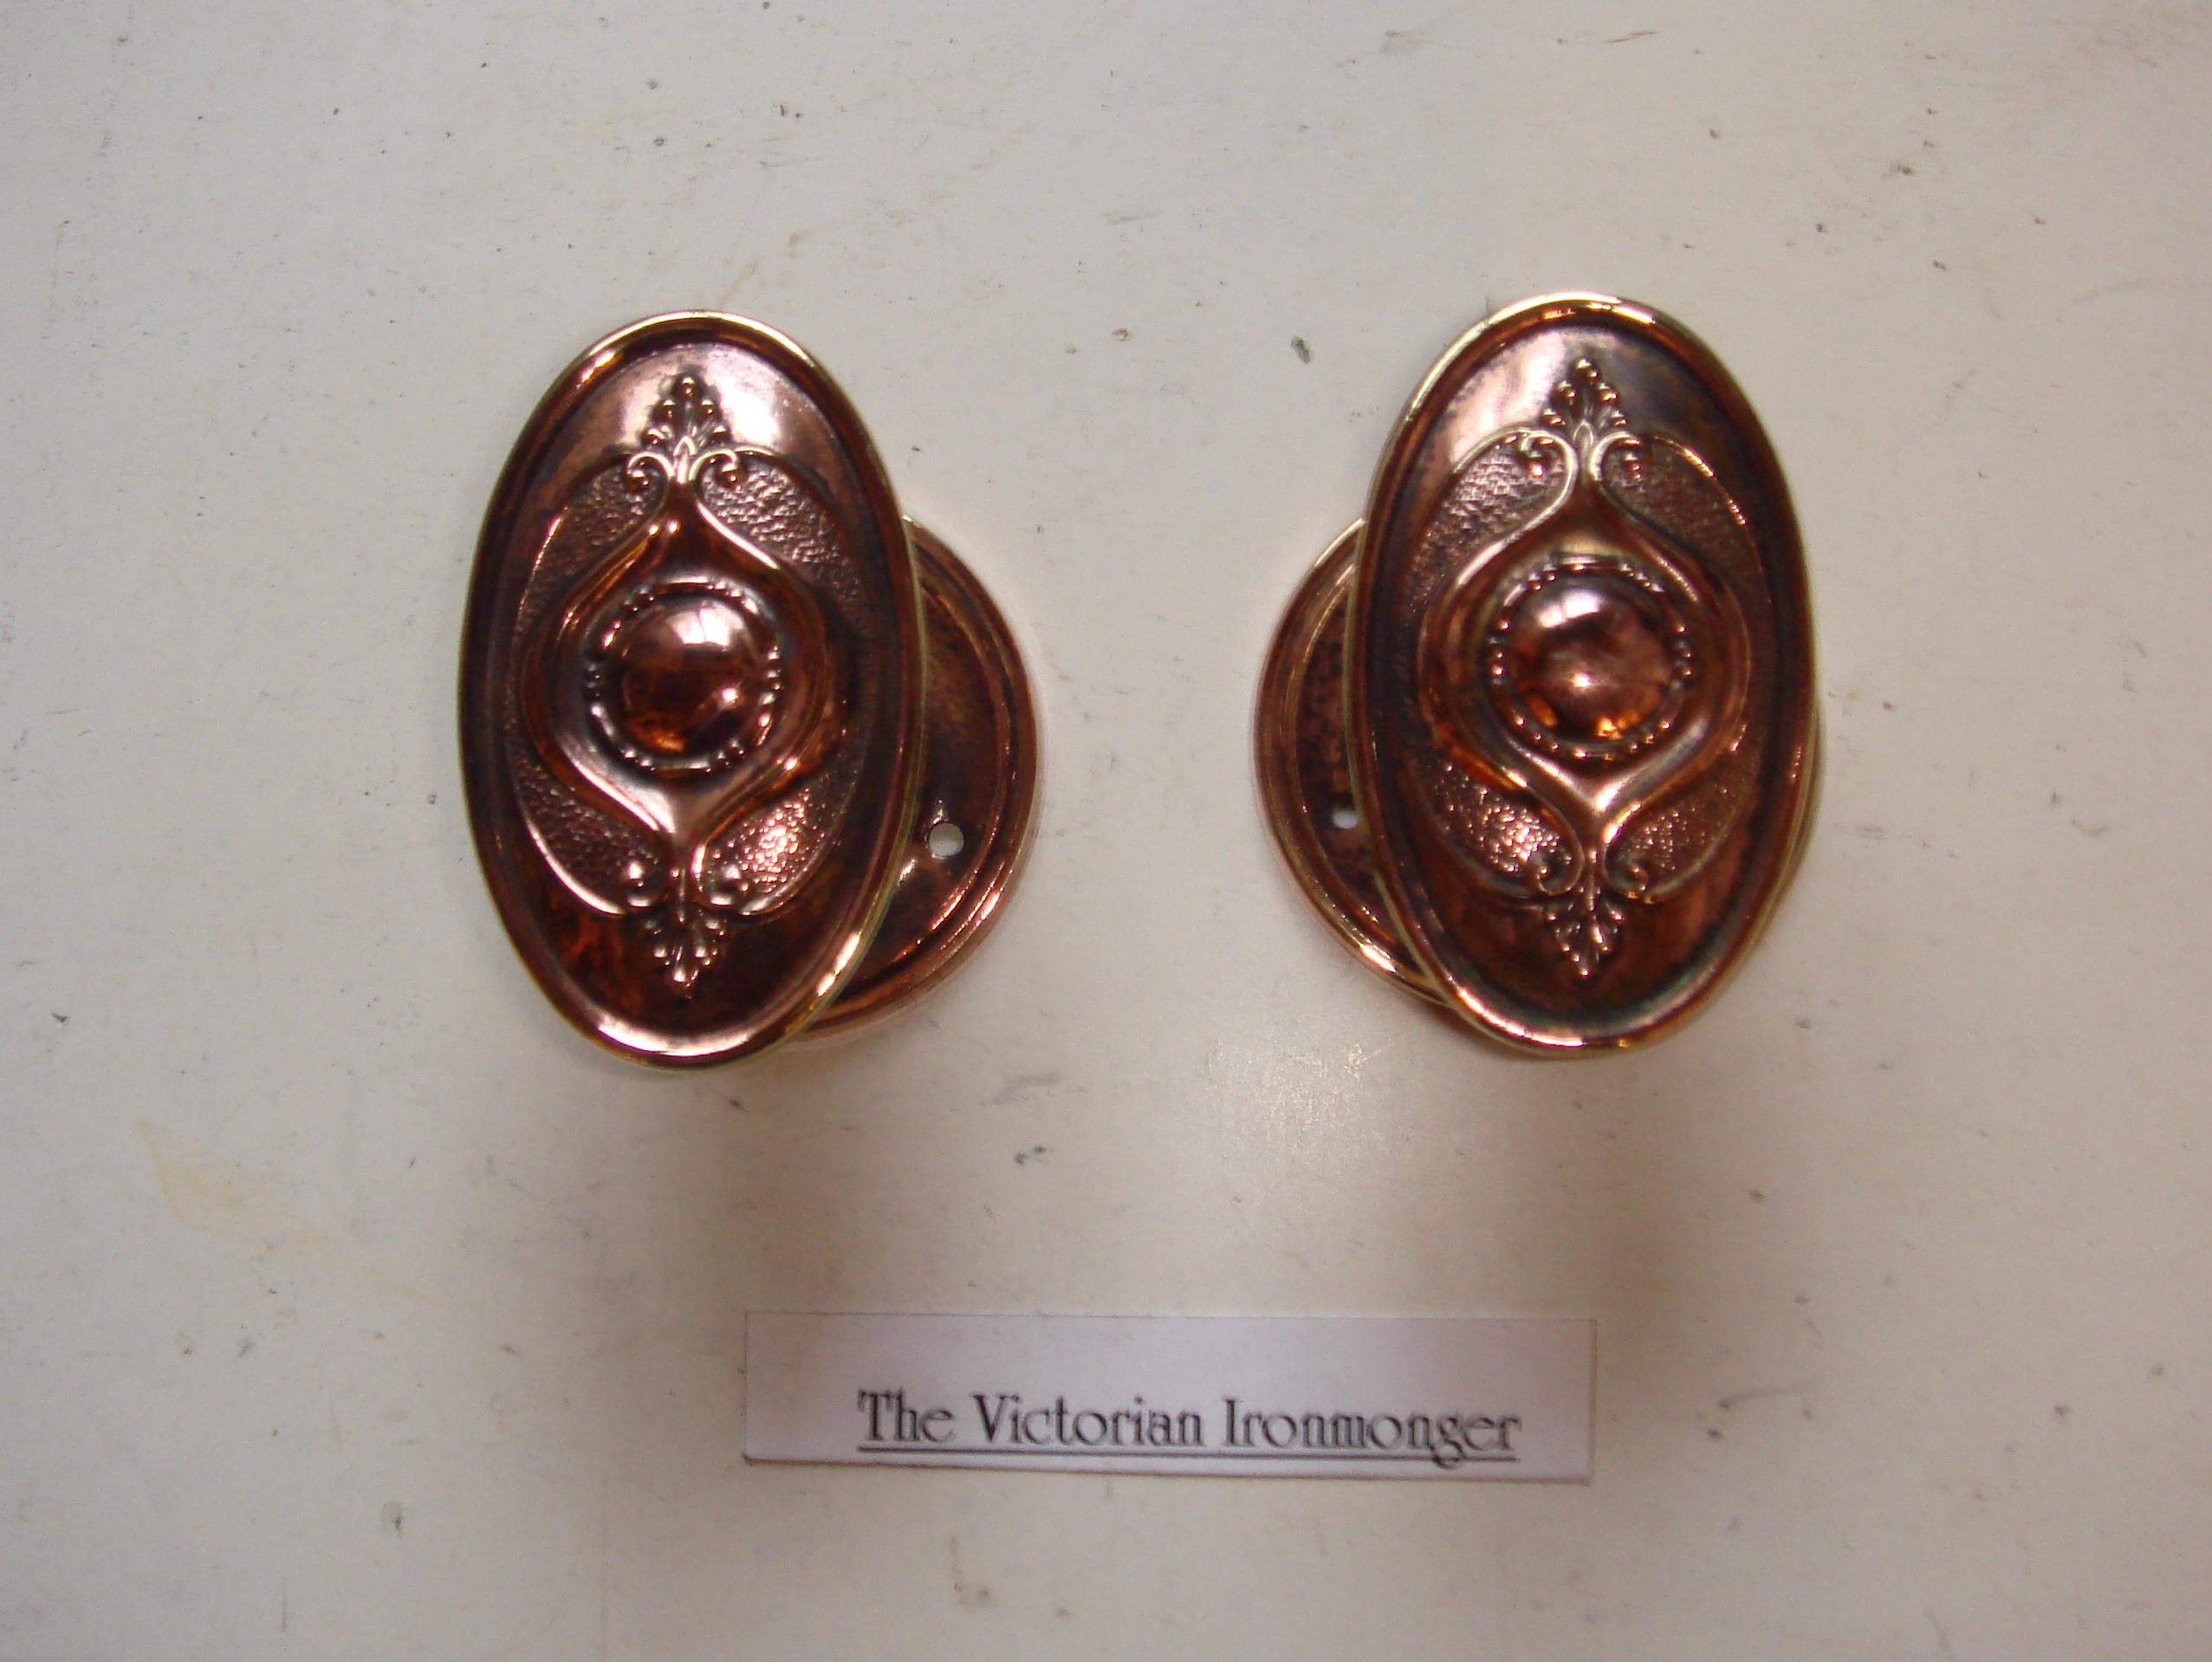 Original Pair of Oval Art Nouveau Brass & Copper Plated Door Knobs